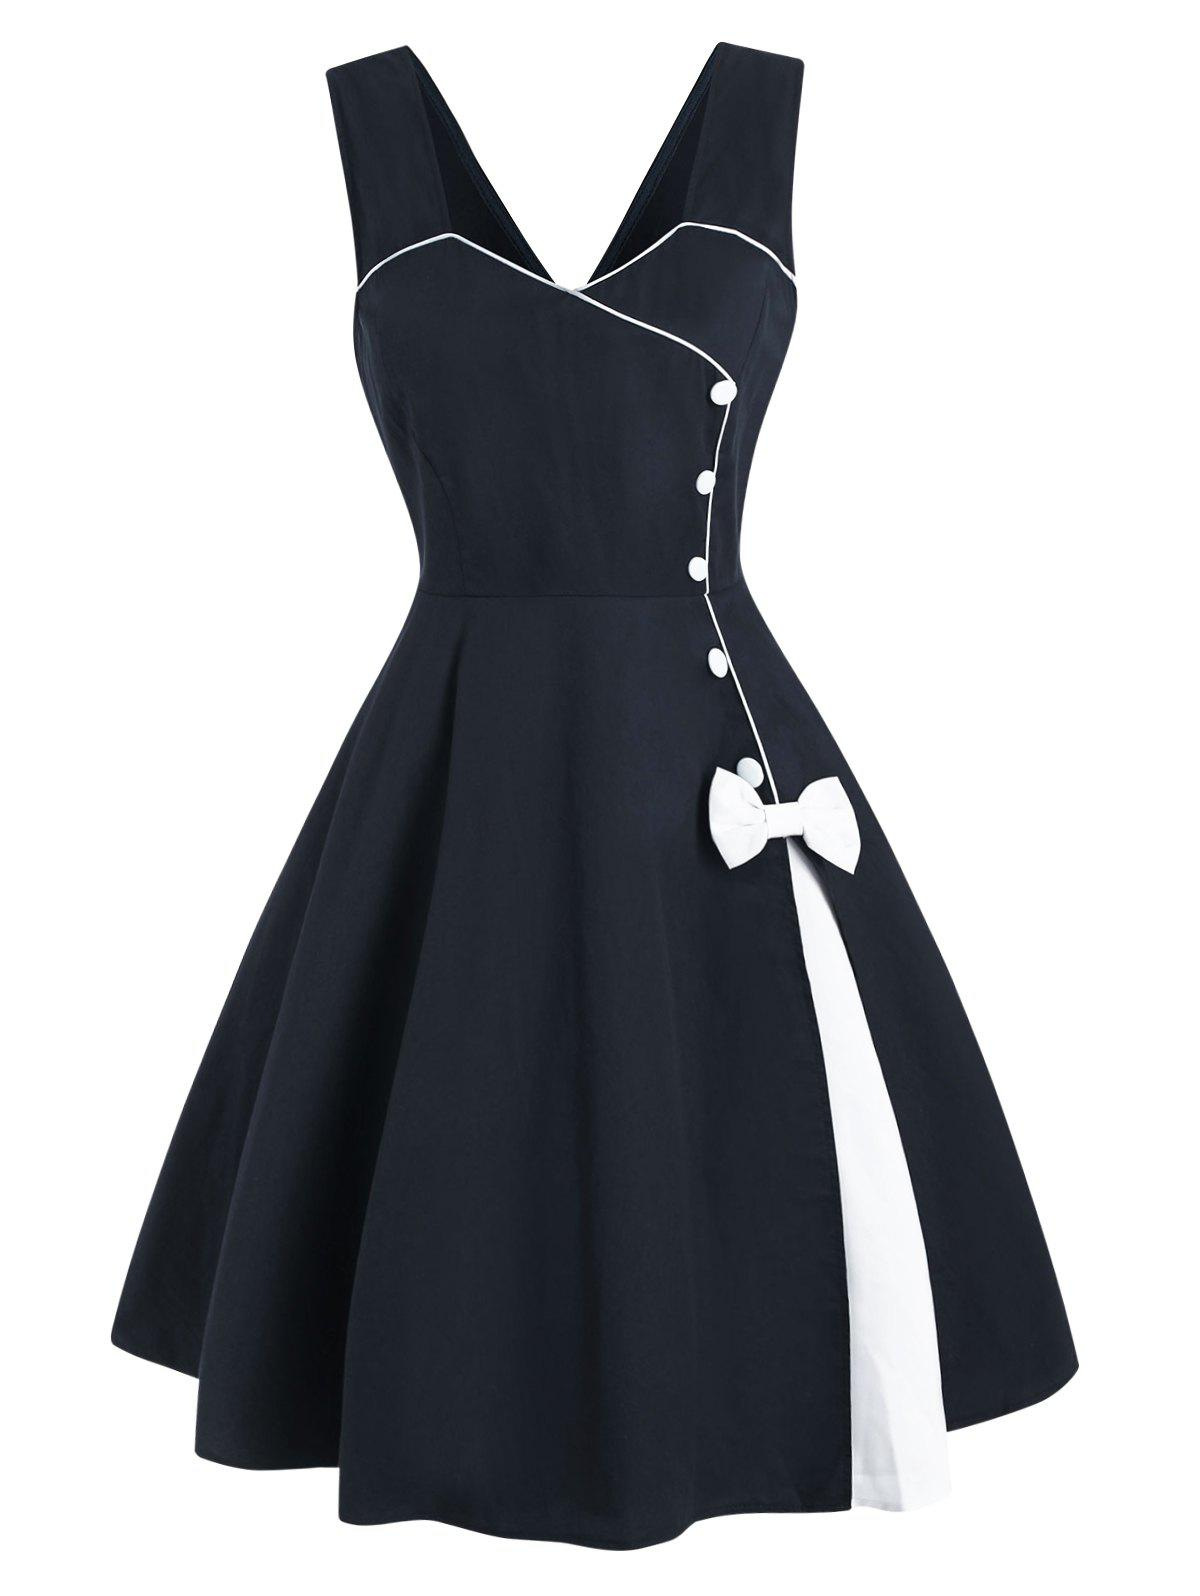 Discount Bowknot Button Embellished Contrast Binding Dress